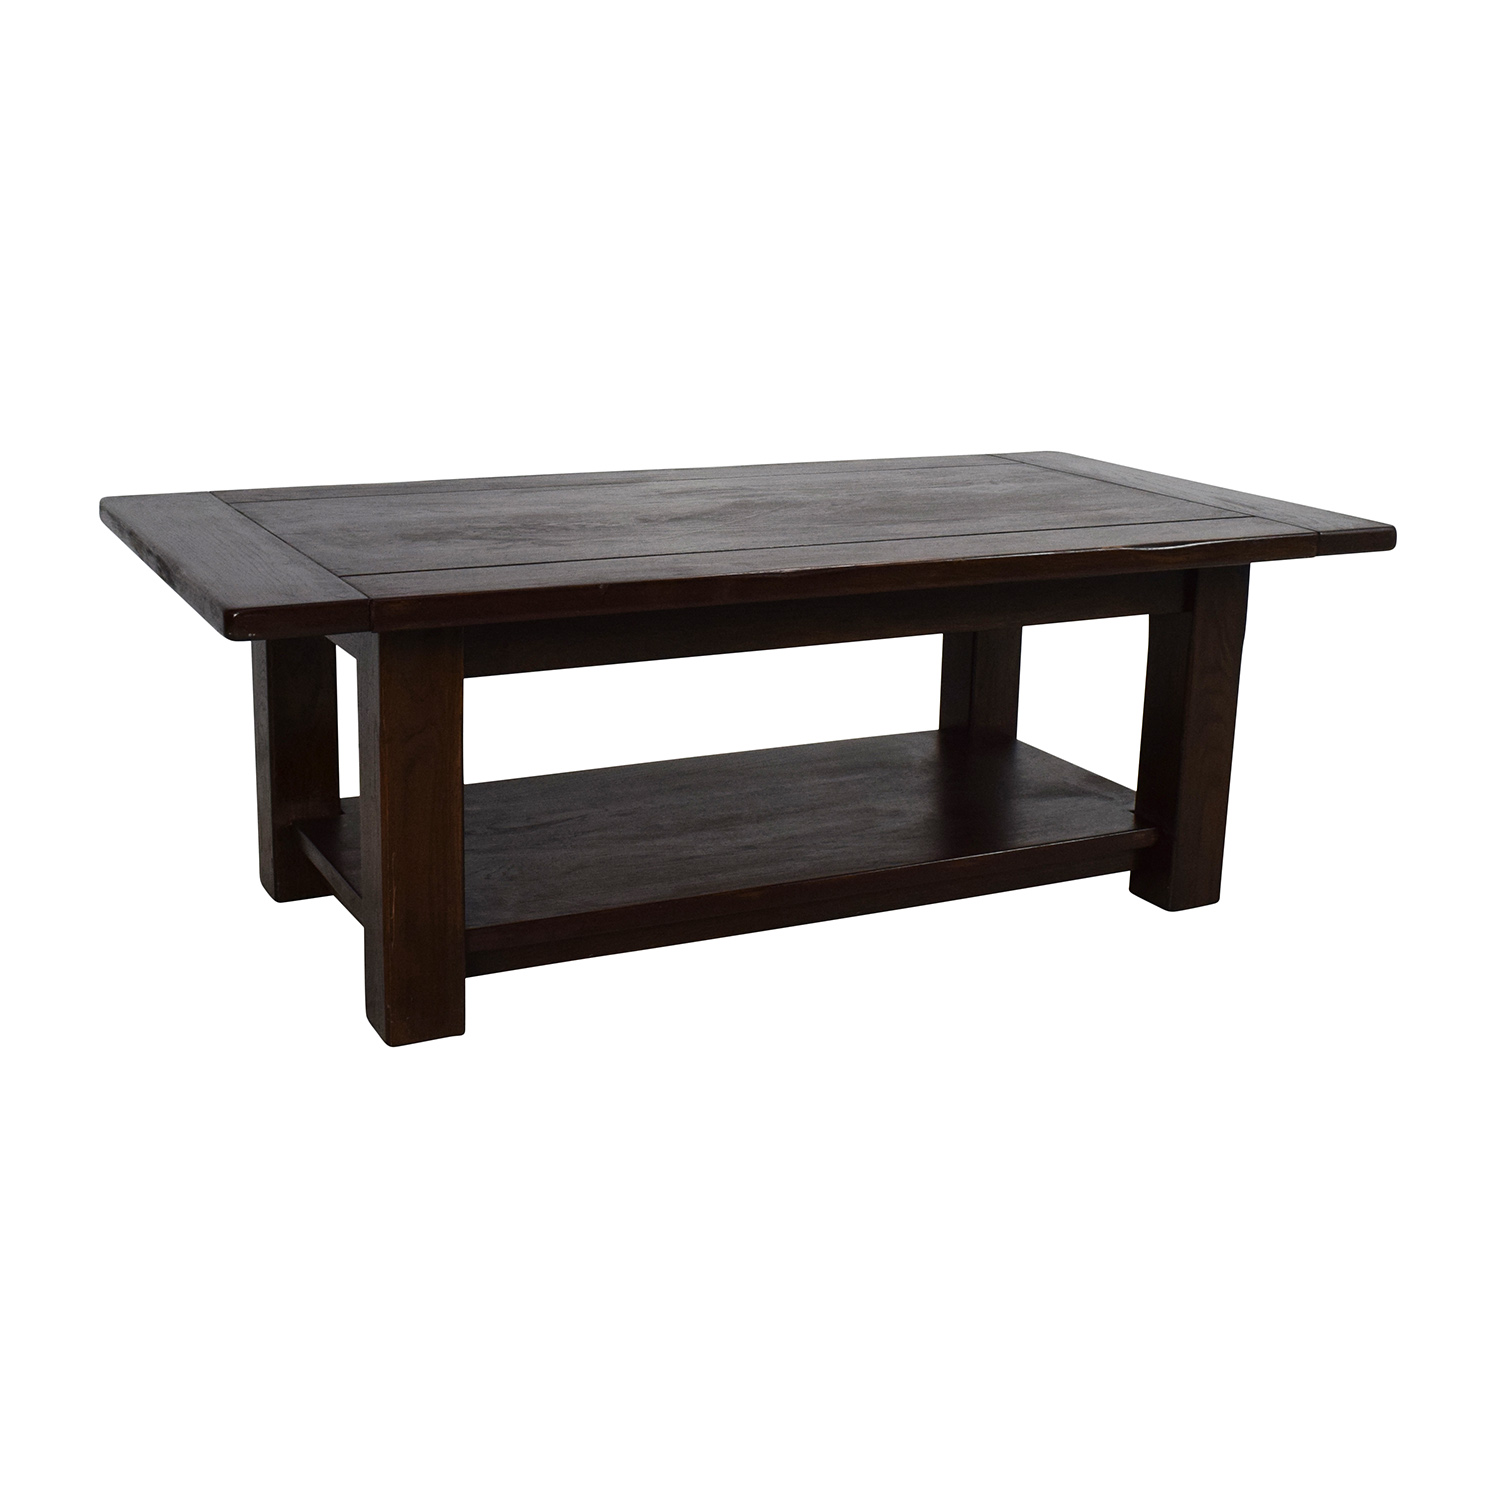 59 Off West Elm West Elm Wooden Coffee Table Tables